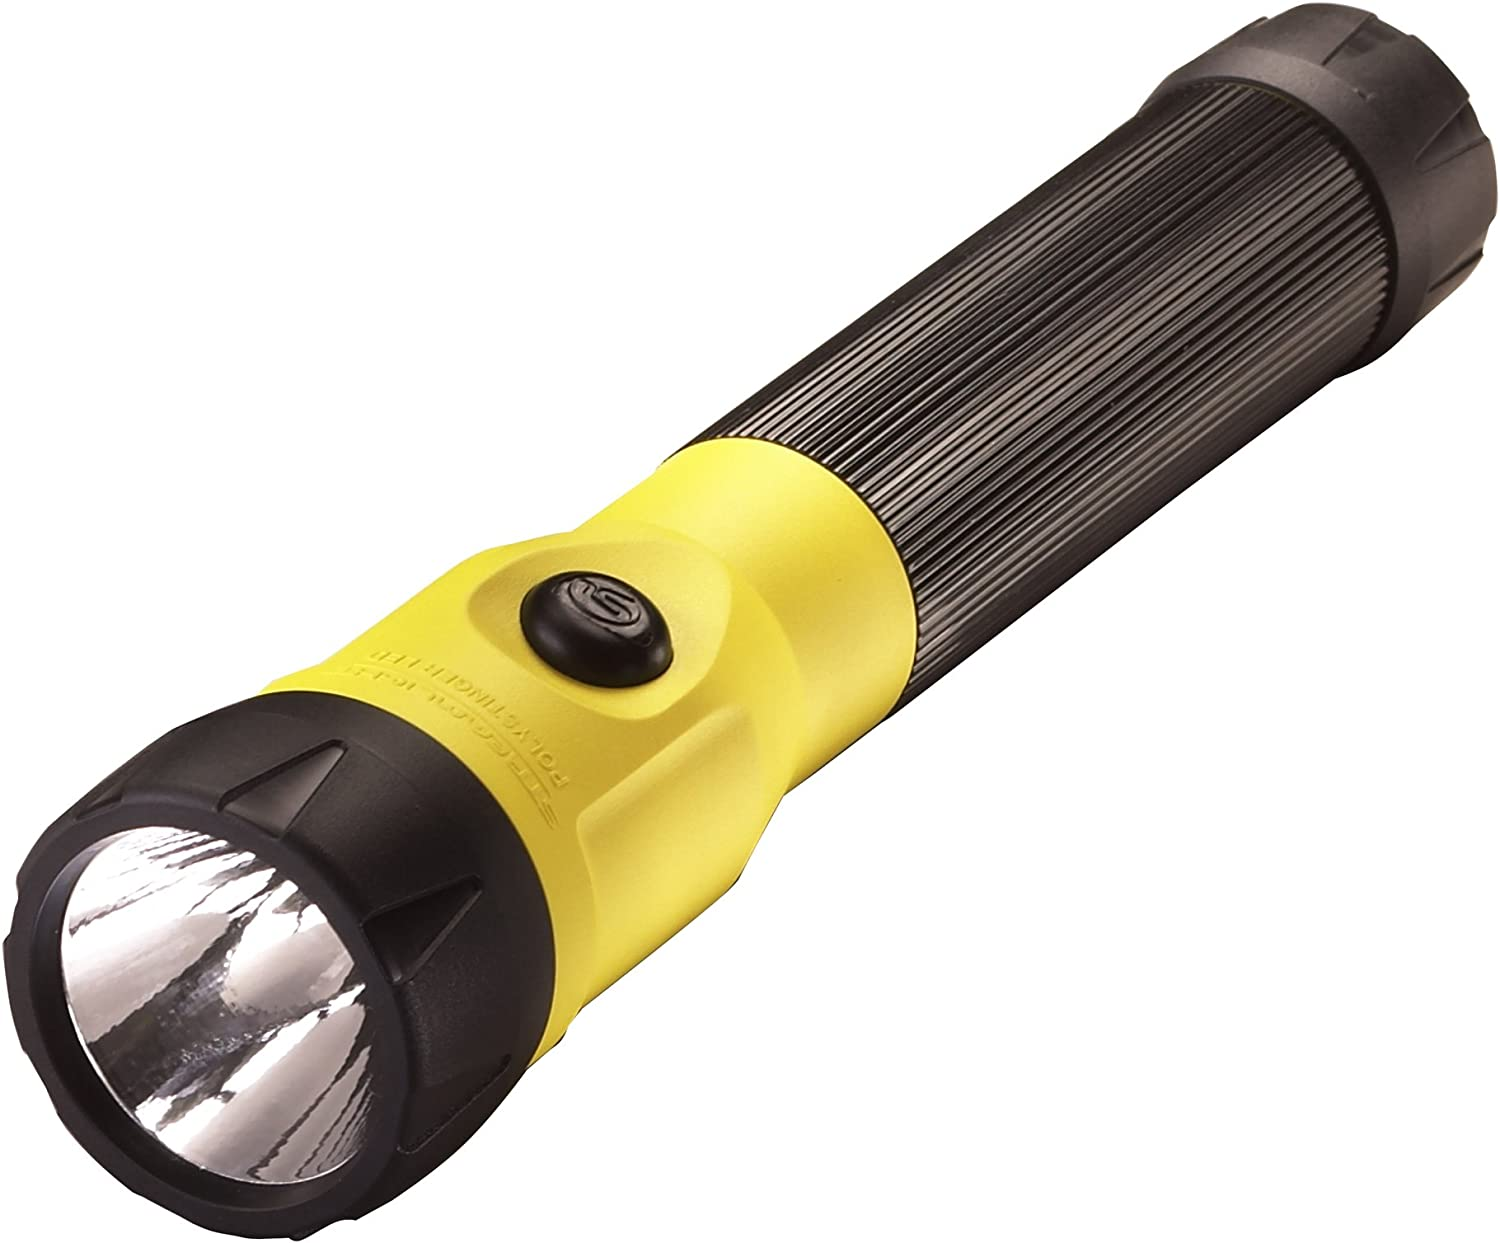 Streamlight 76163 PolyStinger LED Flashlight with 120-Volt AC/DC Charger and 2-Holders, Yellow - 485 Lumens